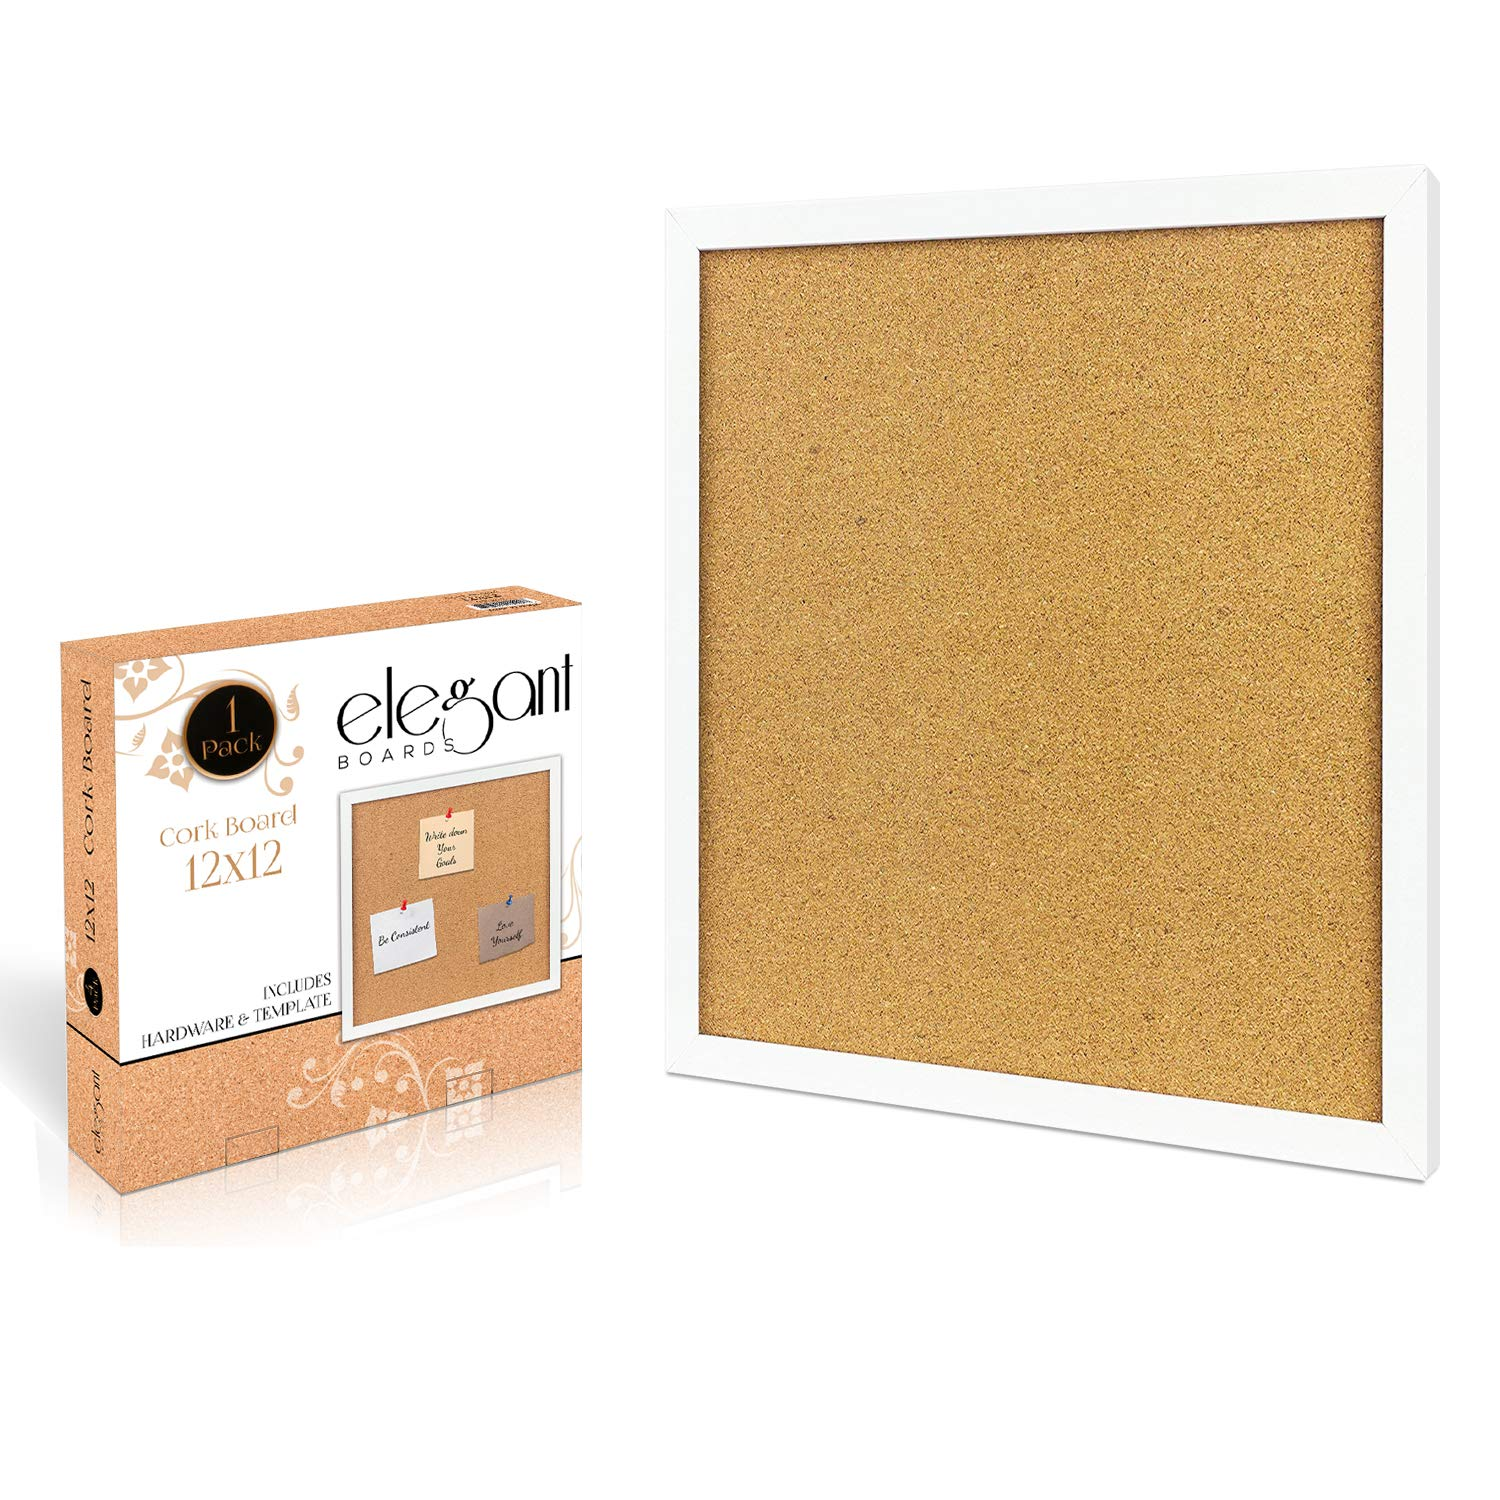 Elegant Boards Cork Bulletin Board 12X 12 Square Wall Tiles , Modern White Framed Boards For Home And Office (Hardware And Template Included)